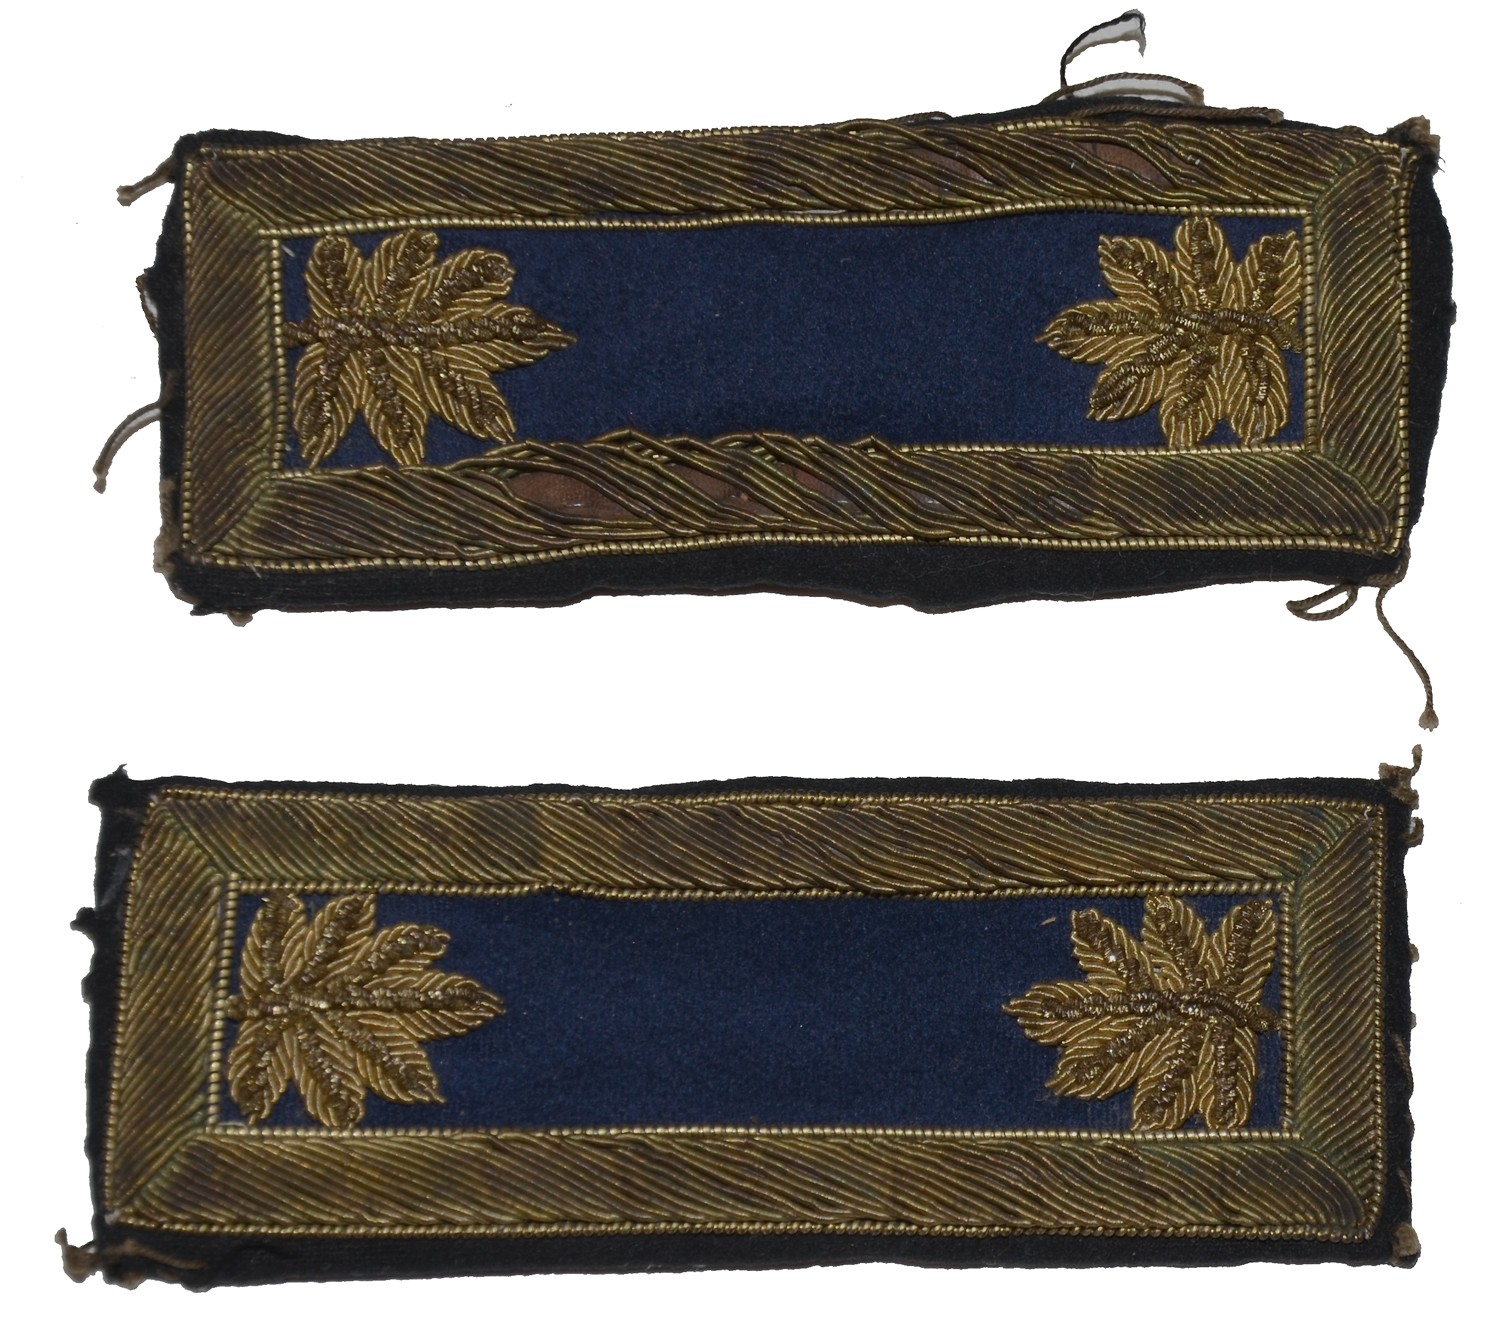 CIVIL WAR MAJOR OF INFANTRY SHOULDER STRAPS